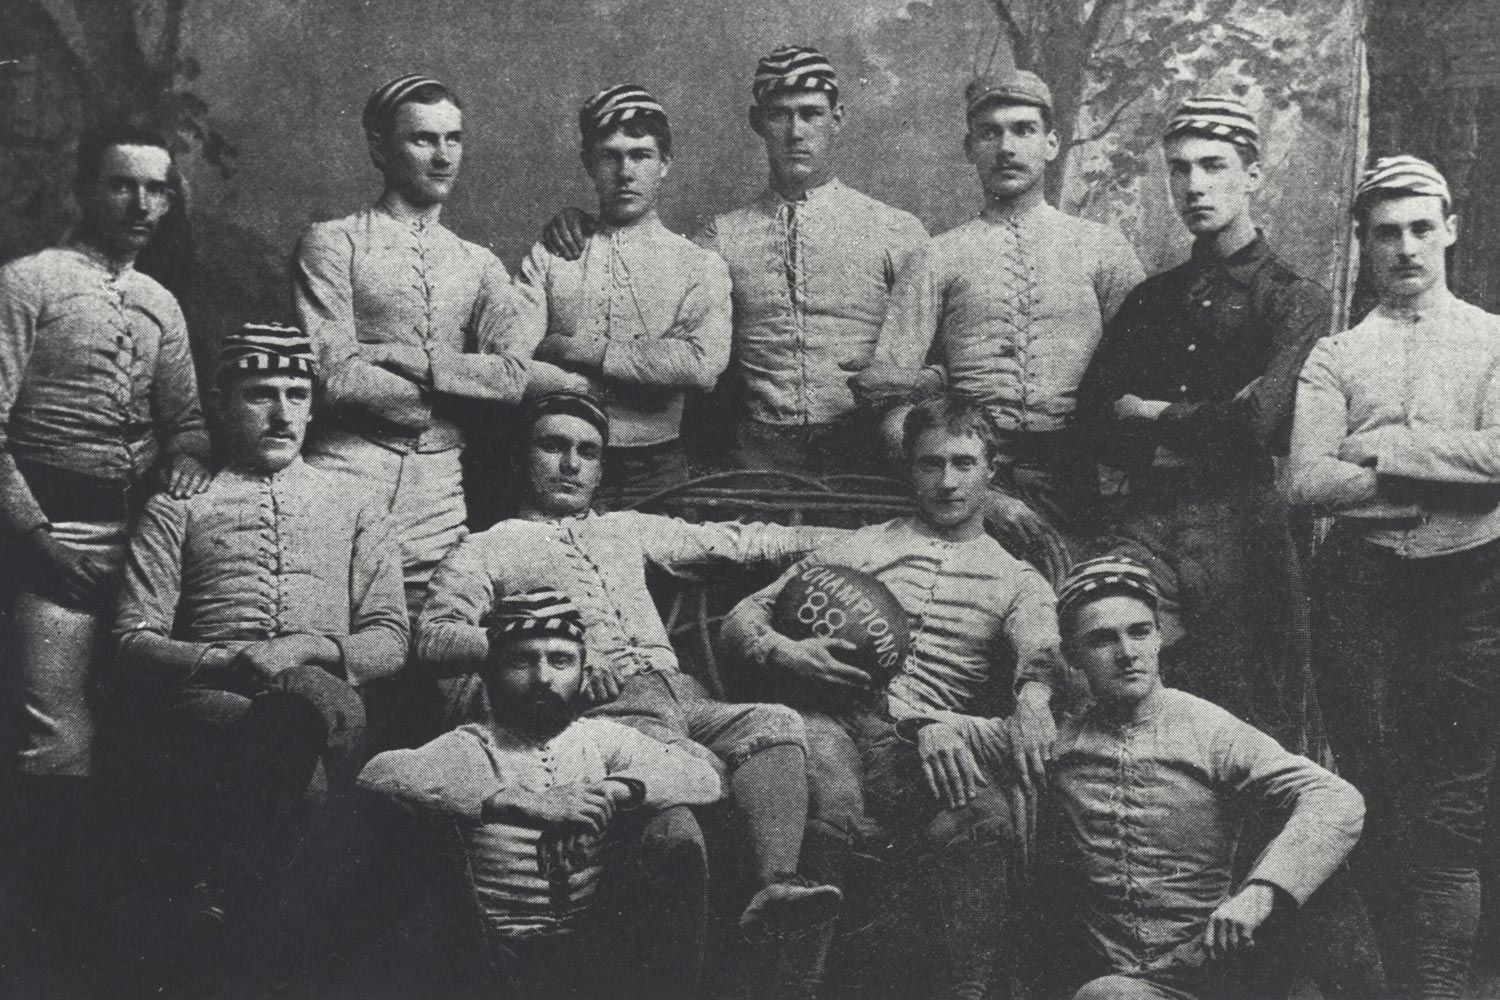 The first UVA football team, which defeated Pantops Academy and Episcopal High School, but lost to Johns Hopkins.